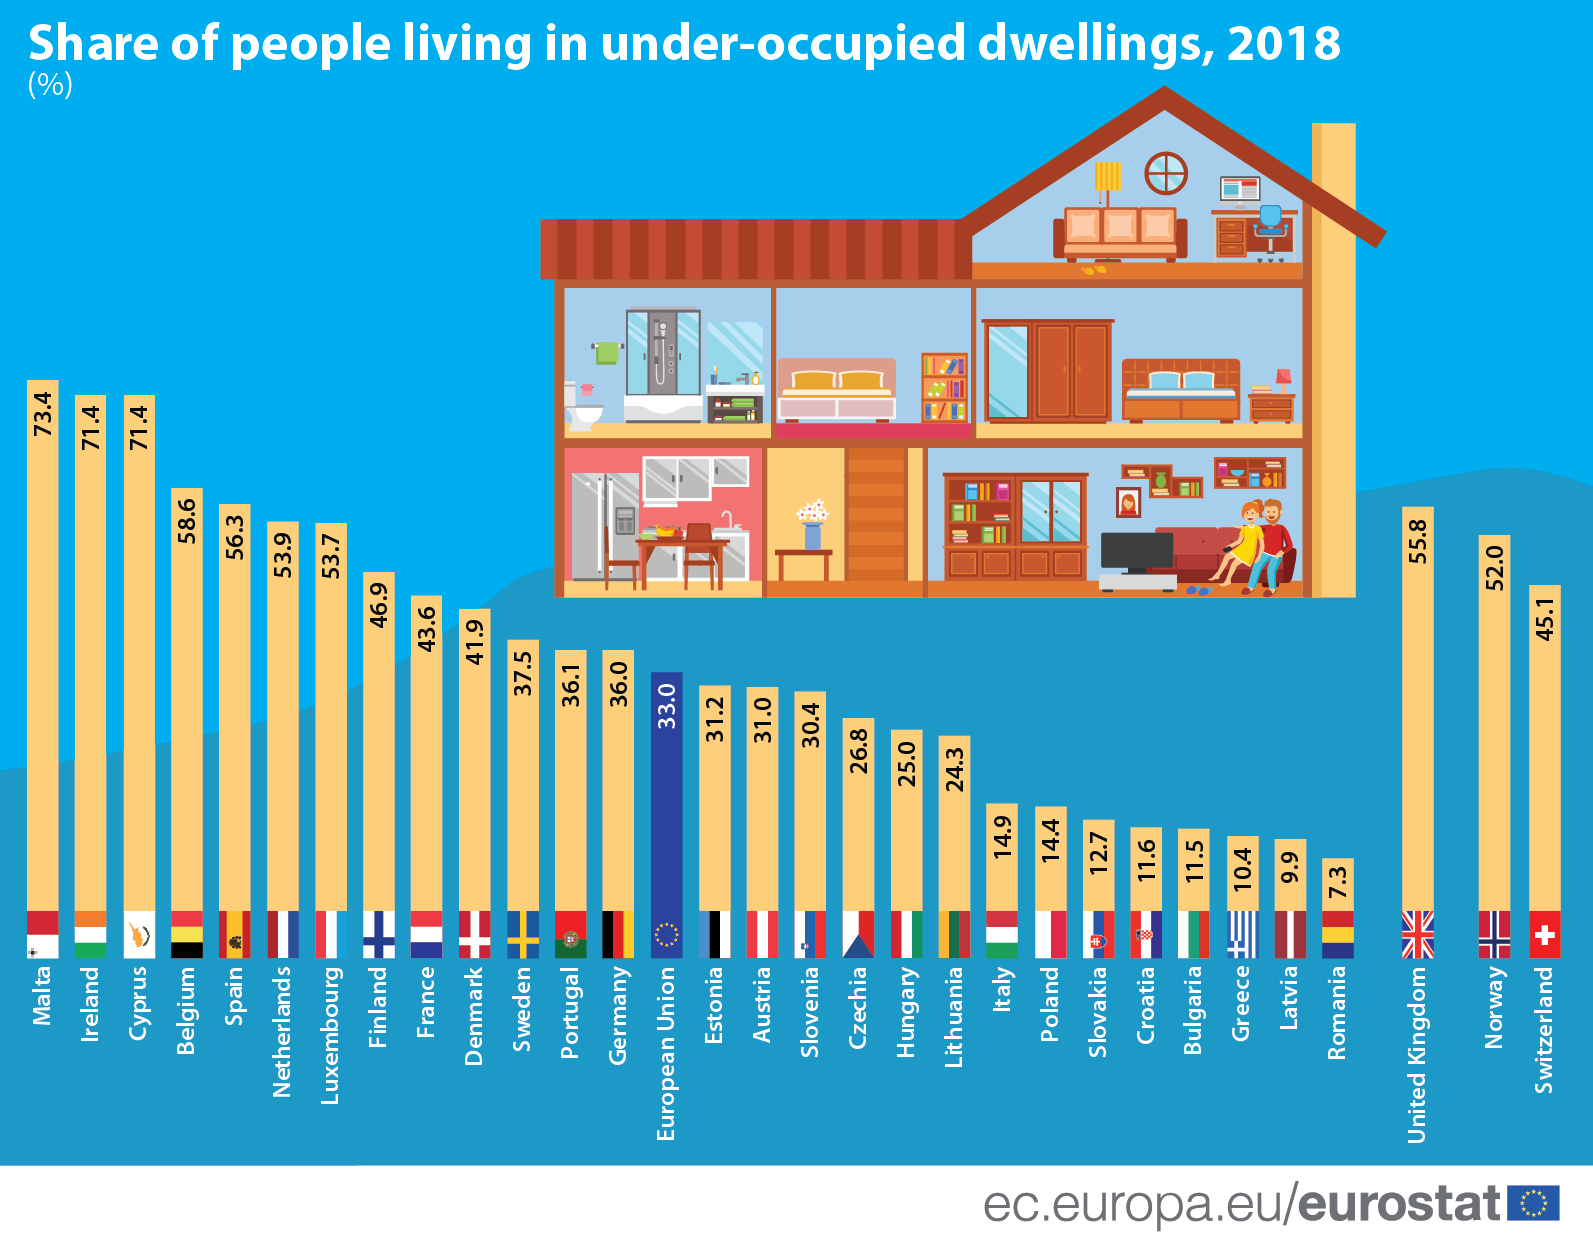 Bar chart/infographic: Share of people living in under-occupied dwellings, 2018 (%)